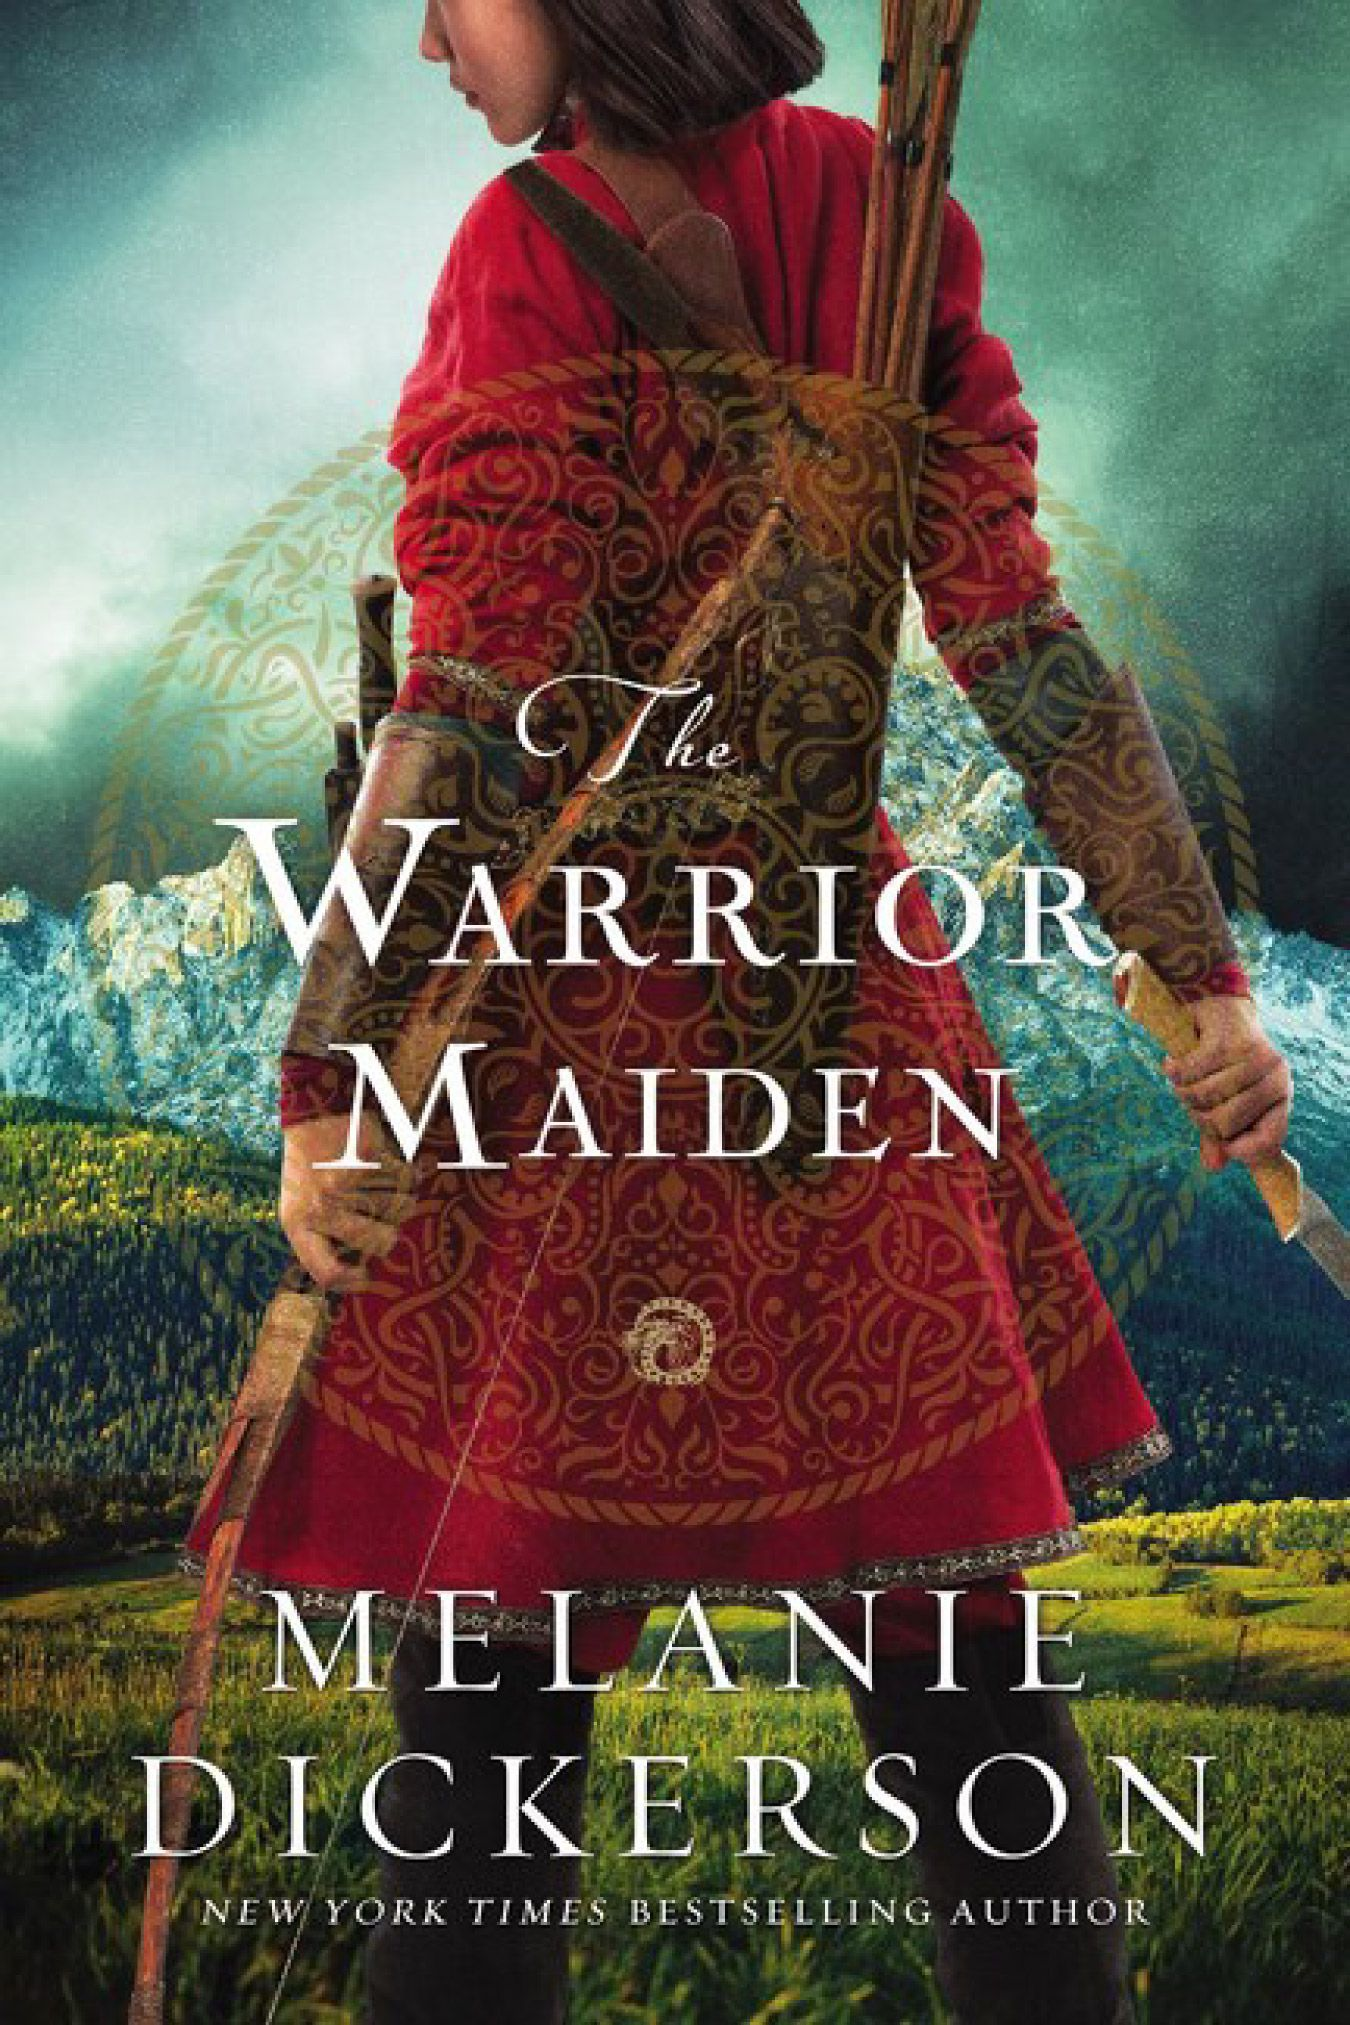 The Warrior Maiden by Melanie Dickerson US Christian